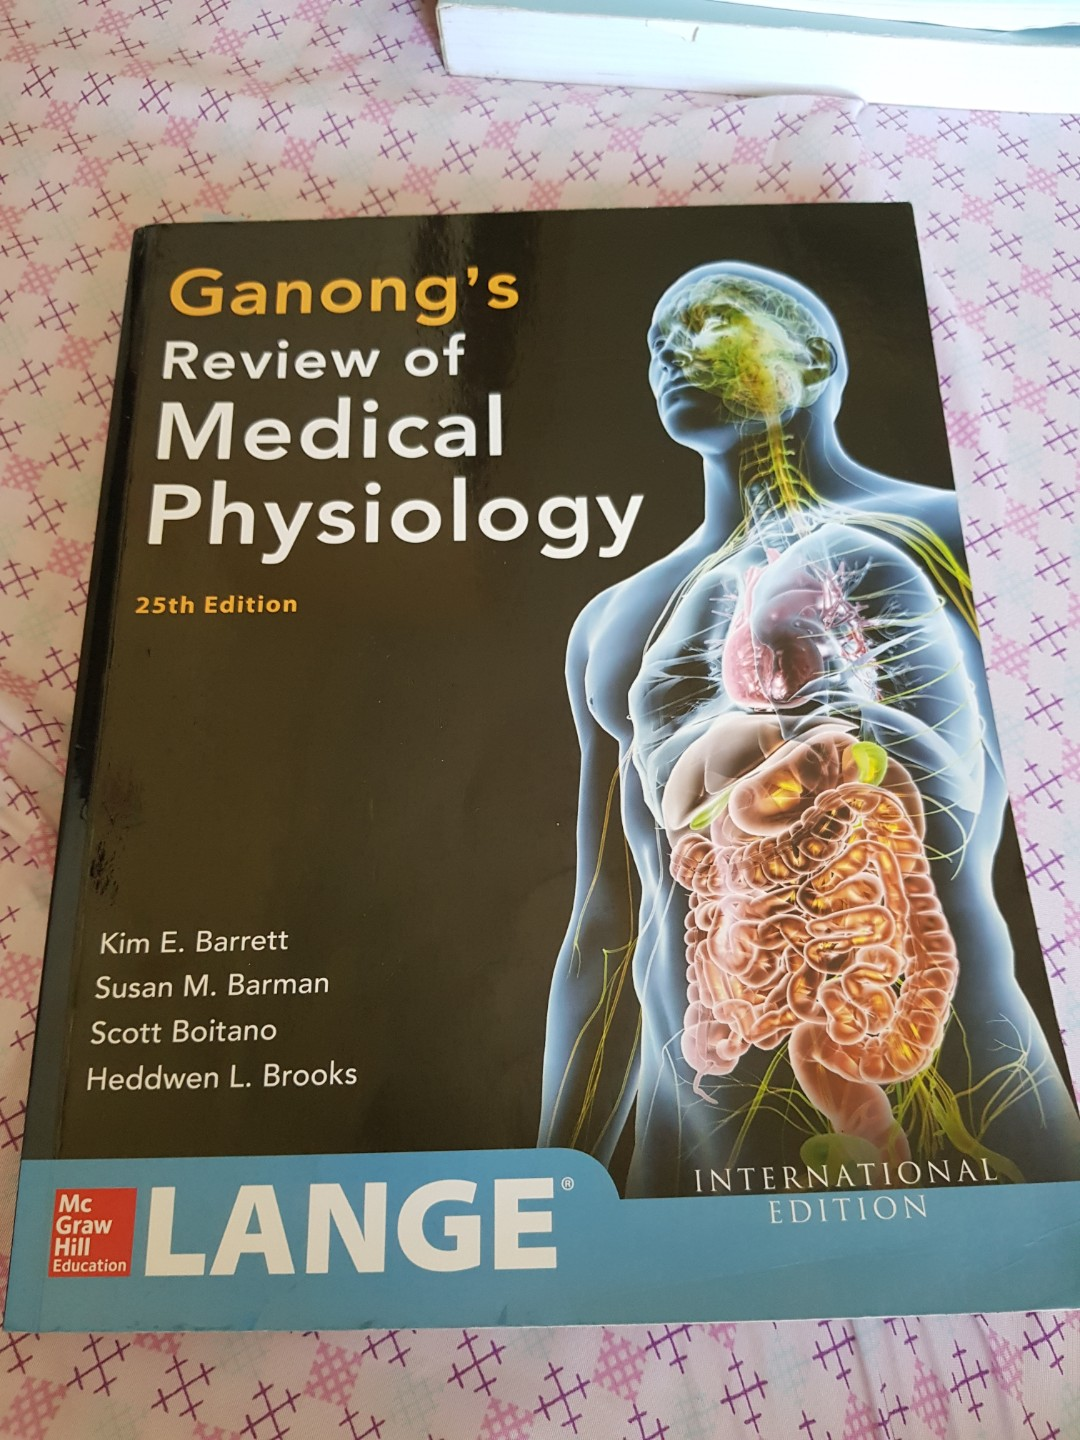 Ganong Medical Physiology, Textbooks on Carousell